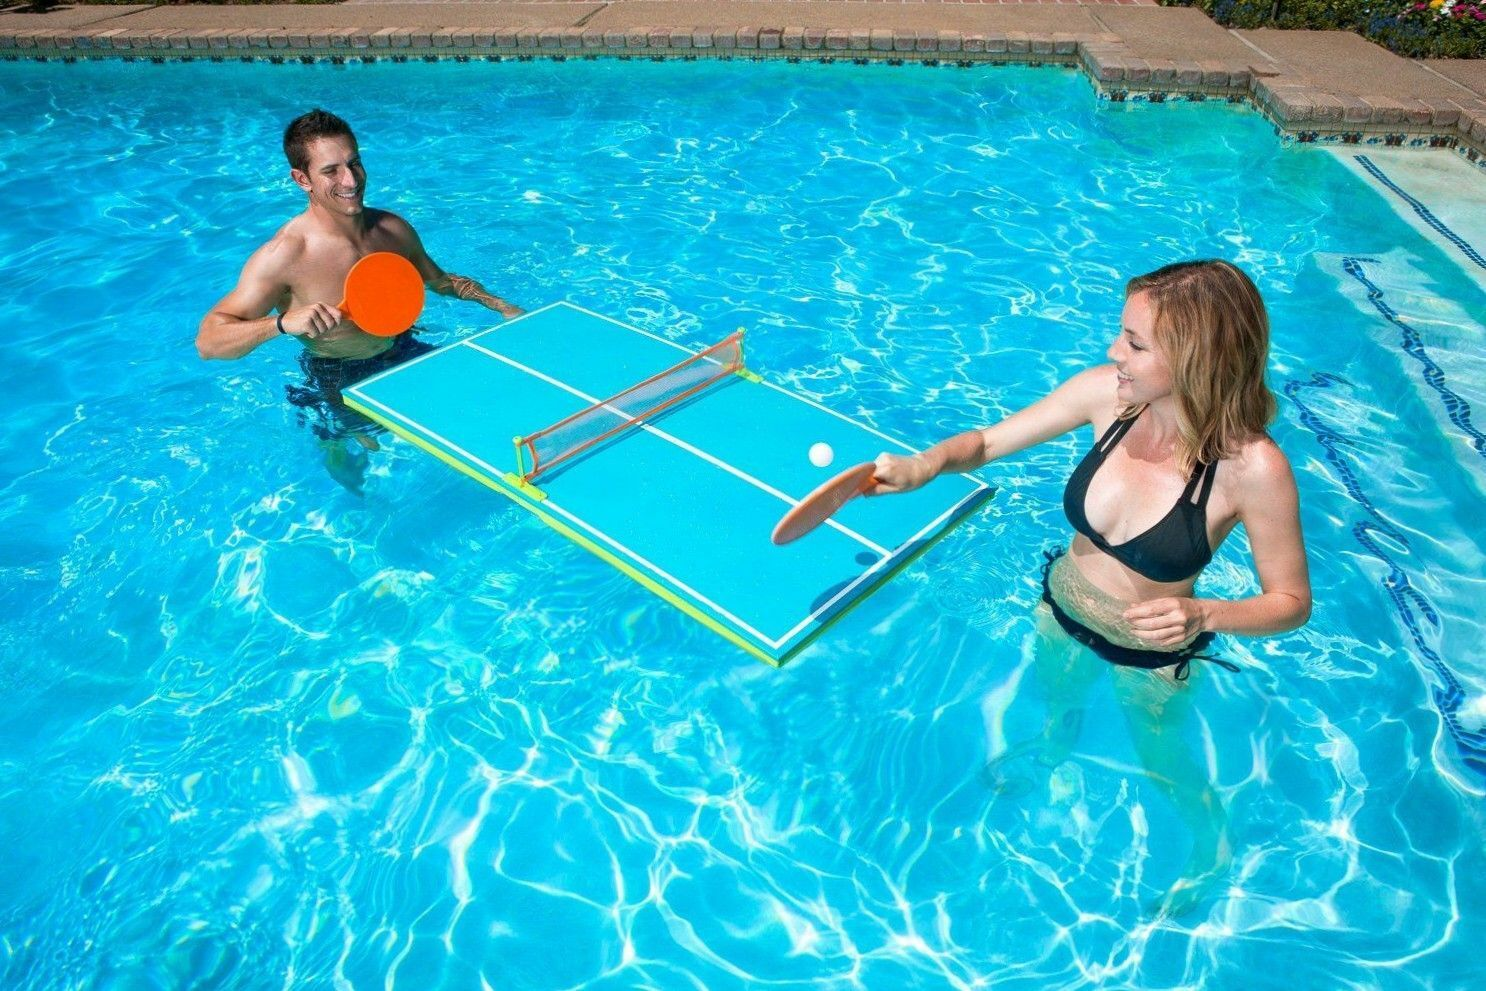 Swimming Pool Ping Pong Tennis Table Game Floating Kids Adult Fun Water  Play Toy